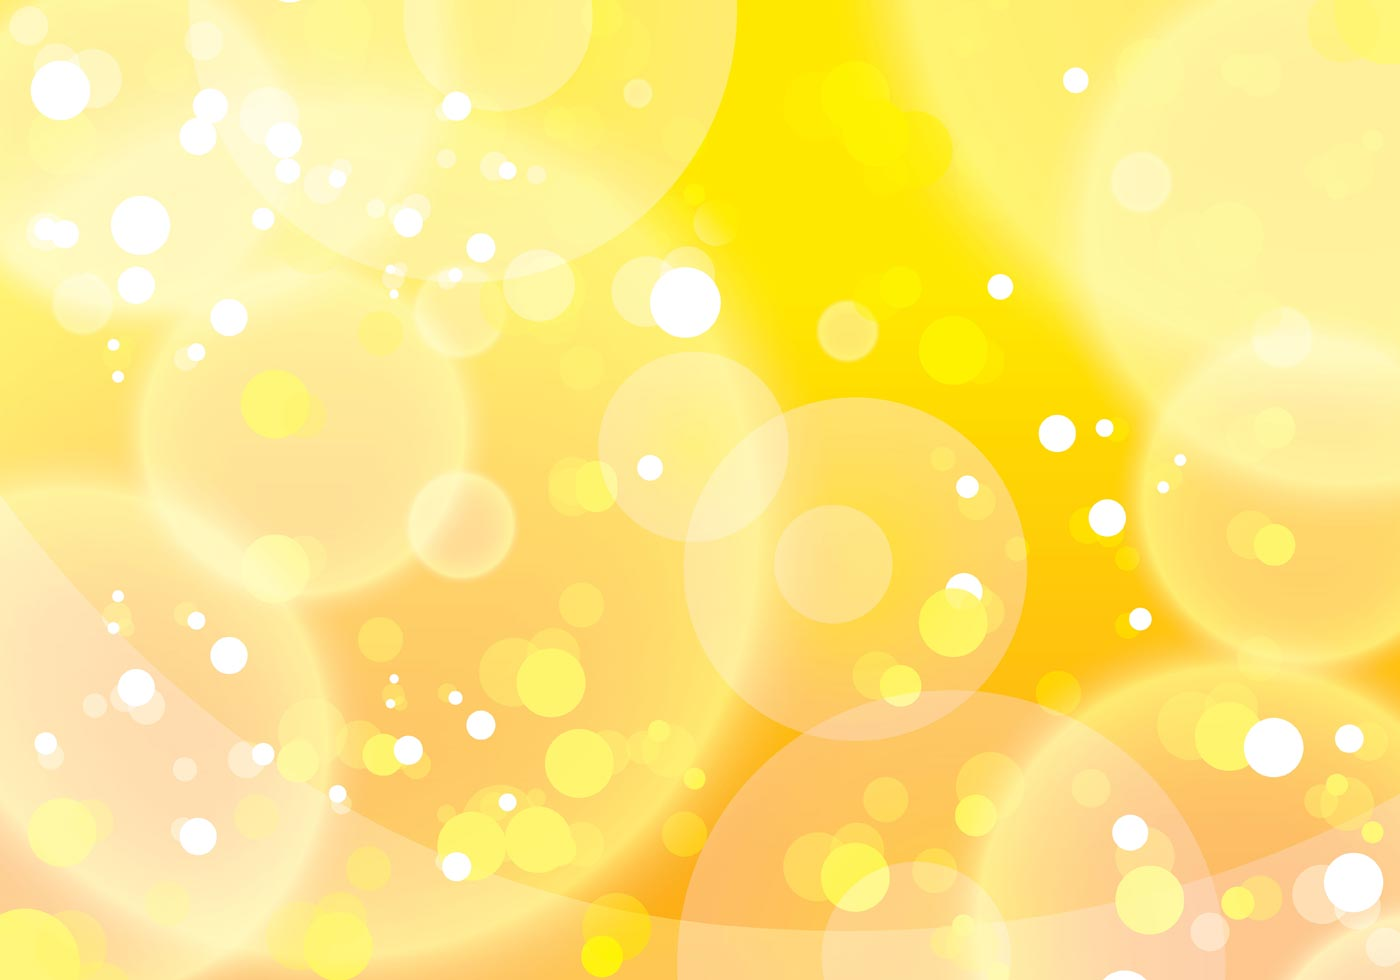 yellow background design 22638 free downloads